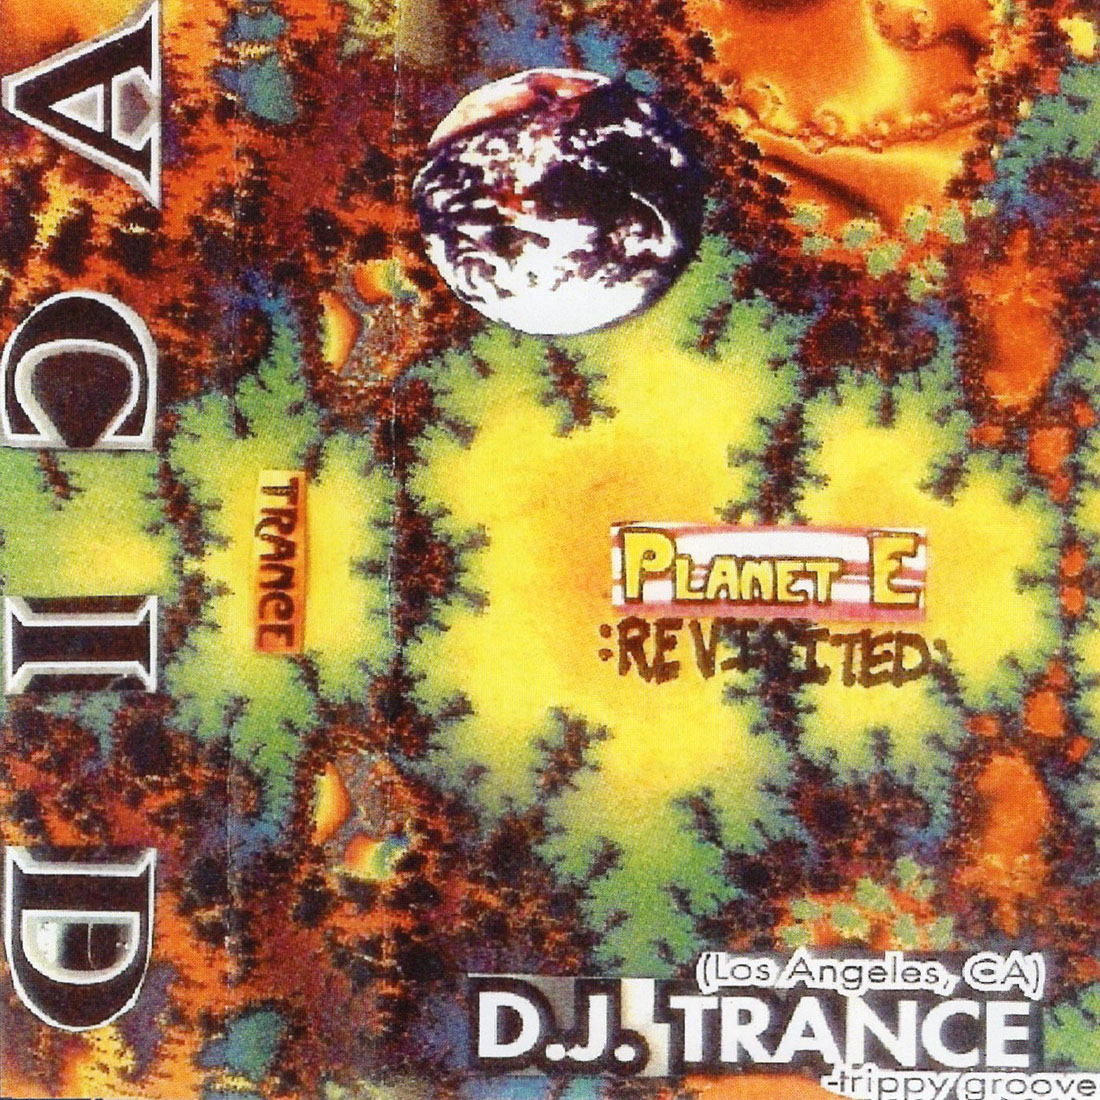 DJ Trance (Jason Blakemore) - Planet E Revisited [DIGITAL DOWNLOAD]